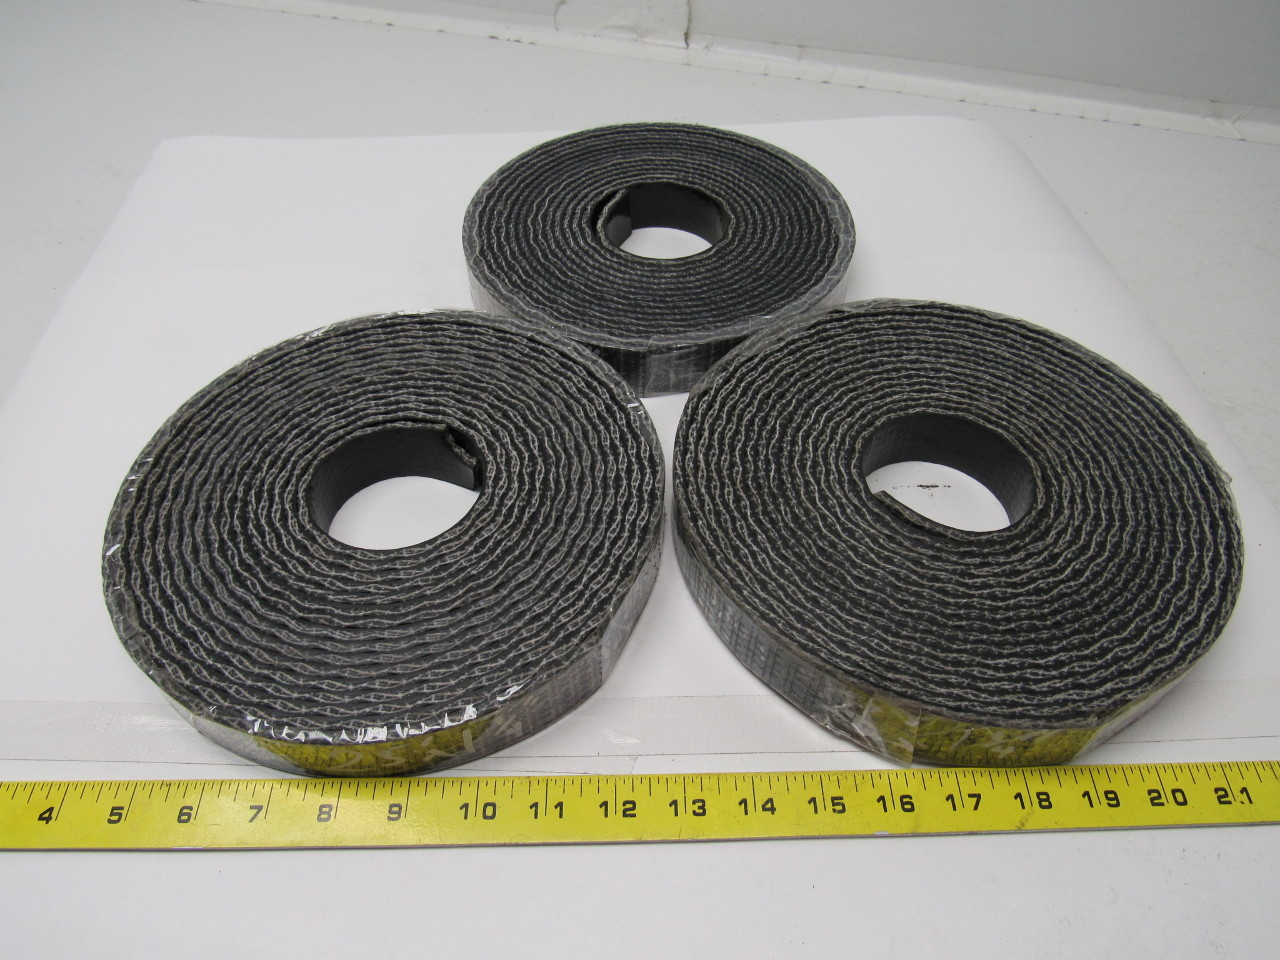 "Black Rubber woven conveyor belt 1-1/4""x .200"" thick Lot of 3 Rolls 75' total"